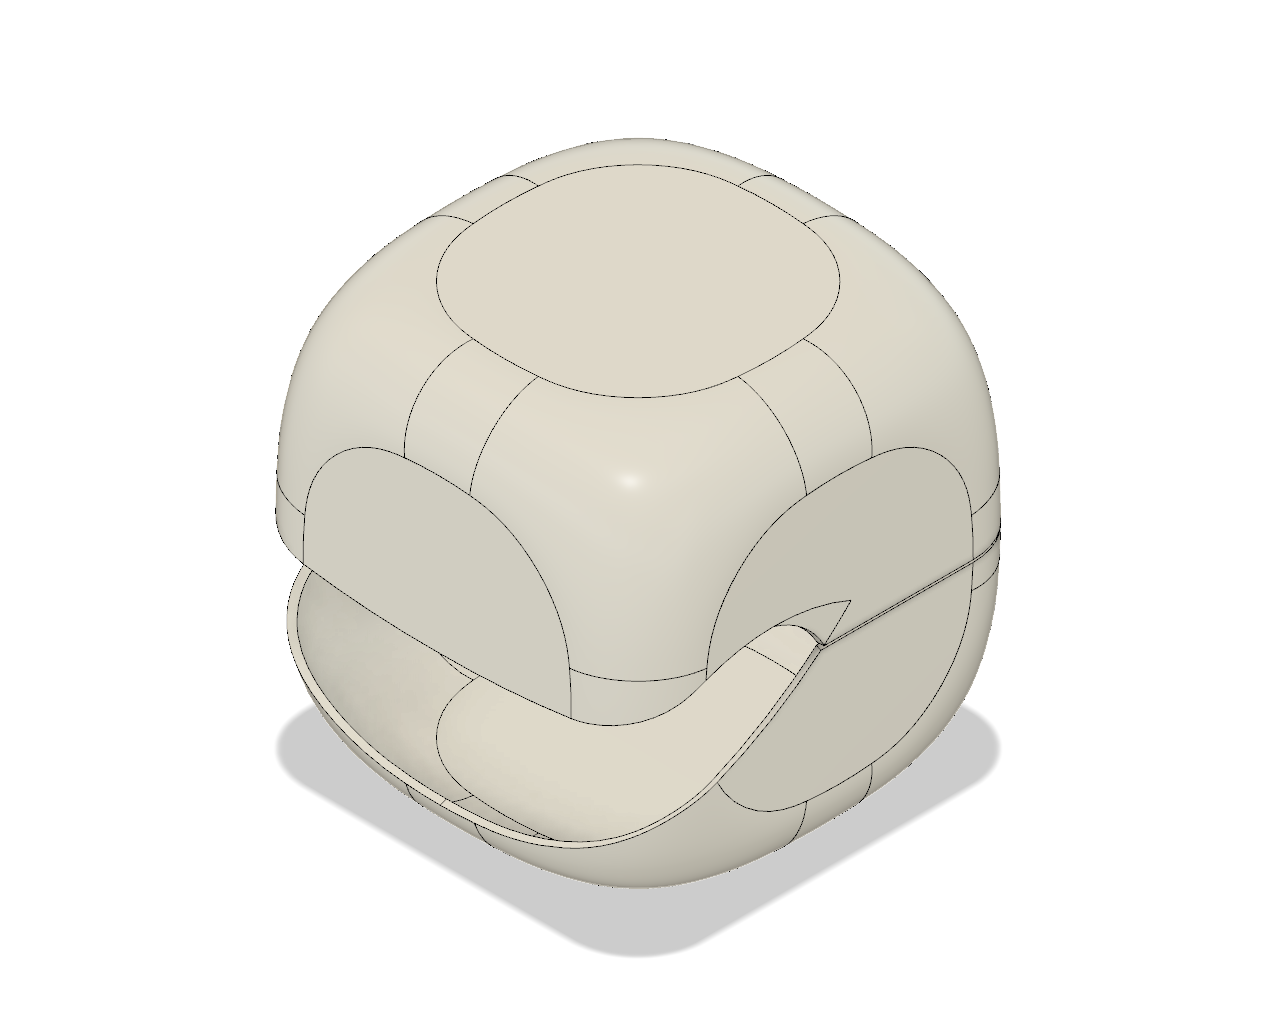 Cube Planter Head CAD Model